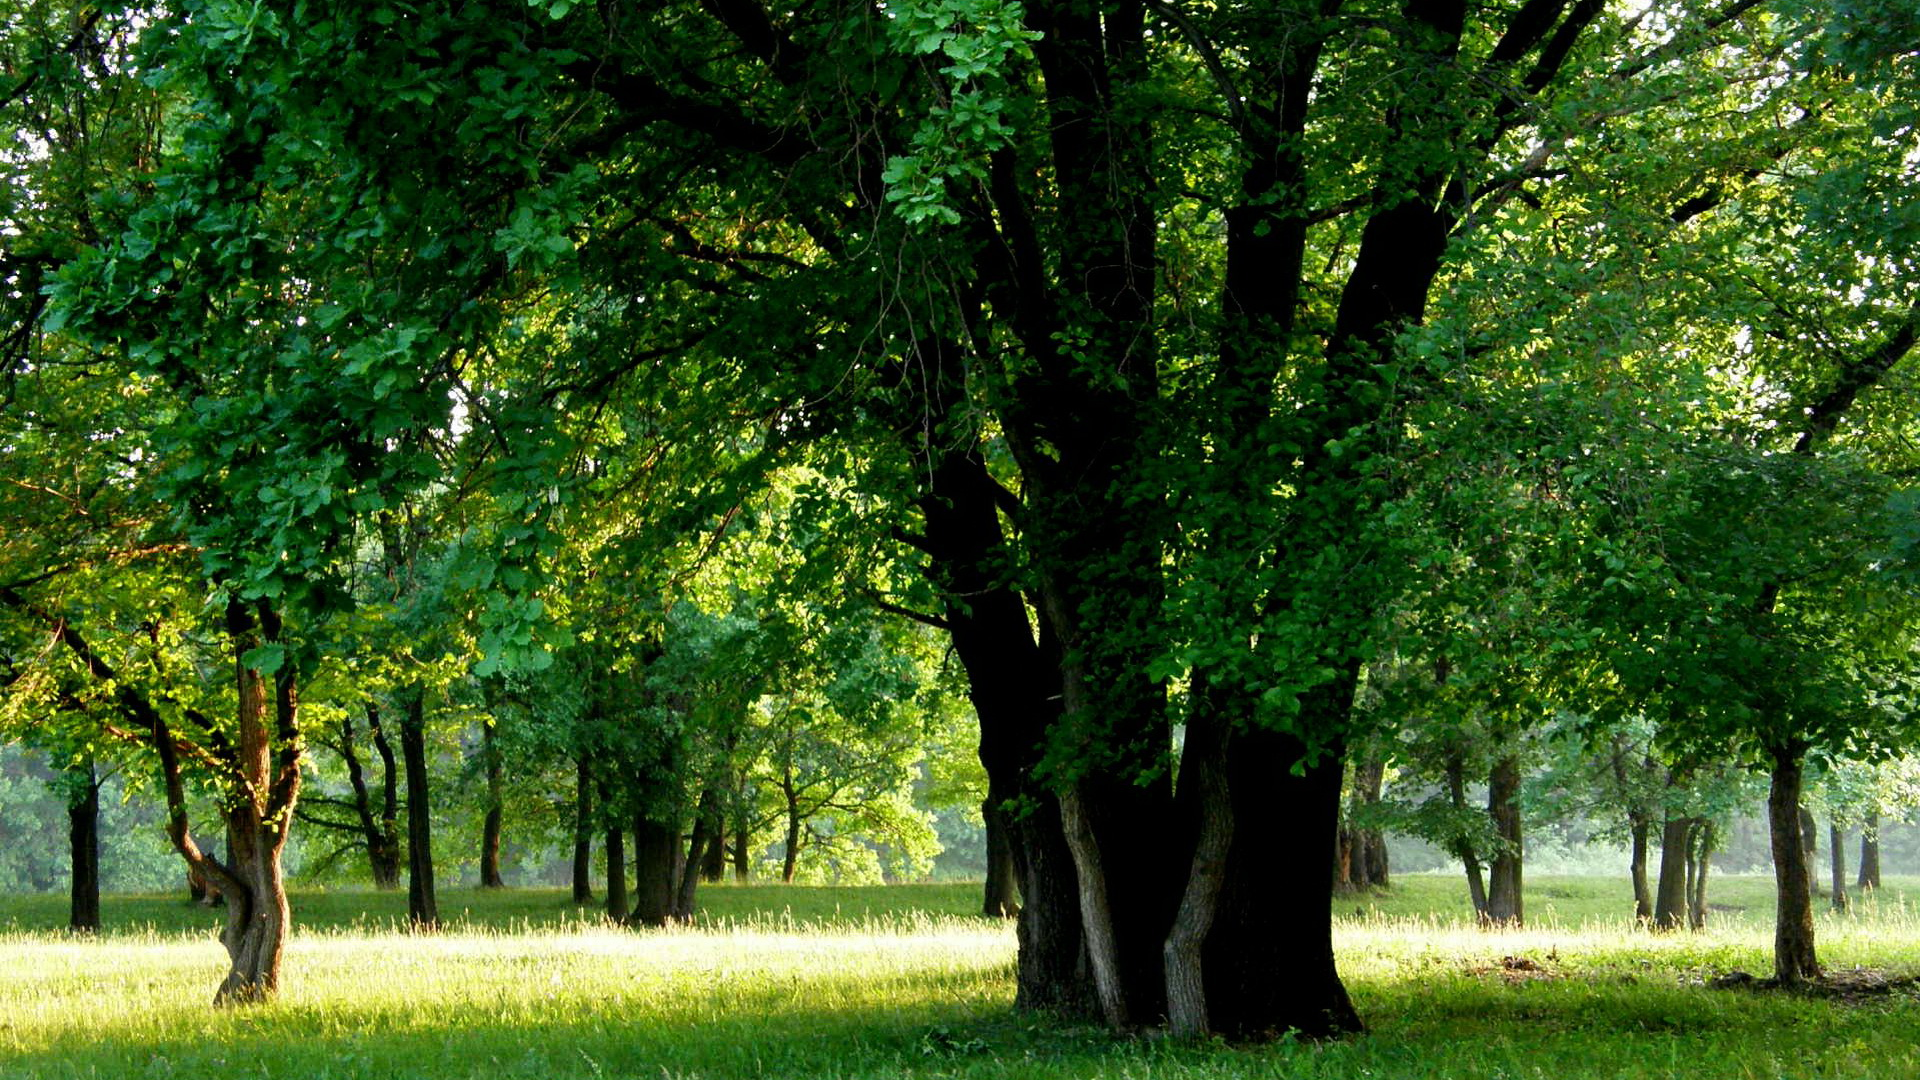 Wallpaper Dinding Pemandangan 3d Nature Images Tall And Green Trees In Prosperous Growth